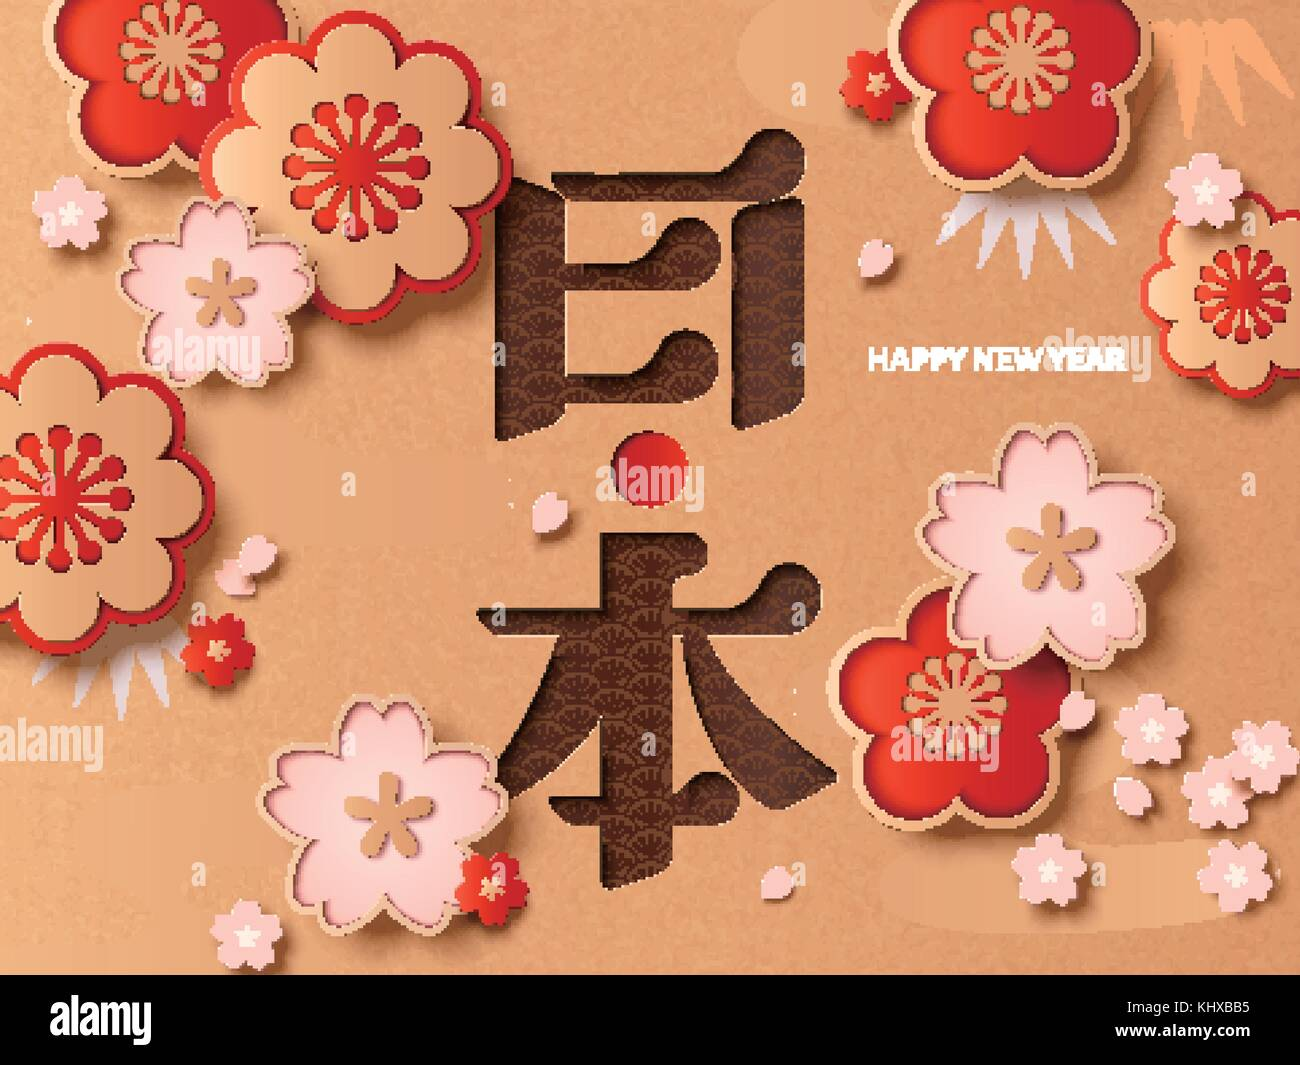 Traditional japan new year concept graceful greeting card with traditional japan new year concept graceful greeting card with cherry blossom and plum flower elements japan country name in japanese word m4hsunfo